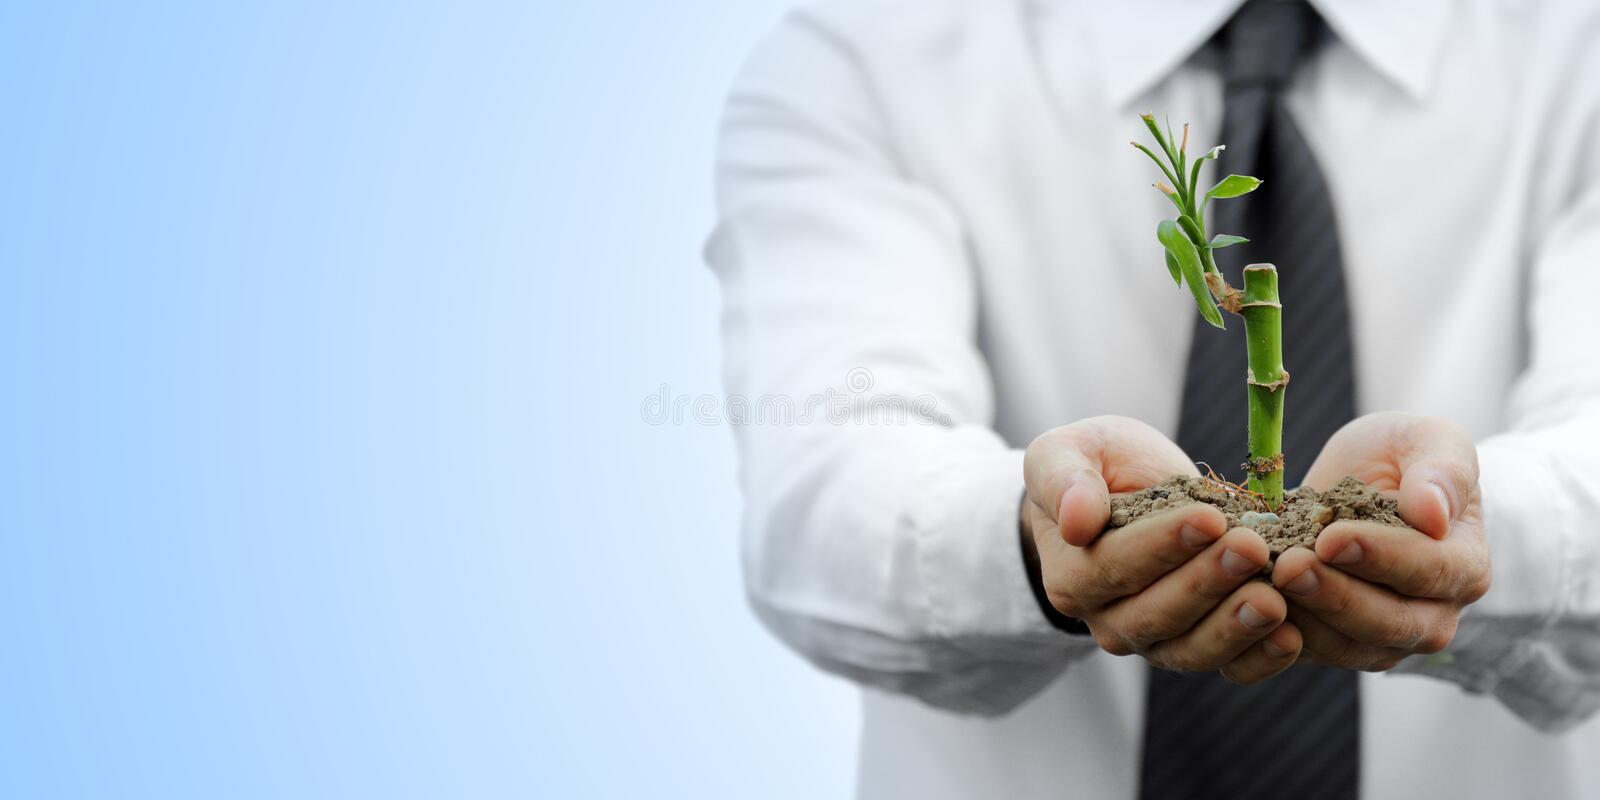 Business and nature metaphor royalty free stock photo